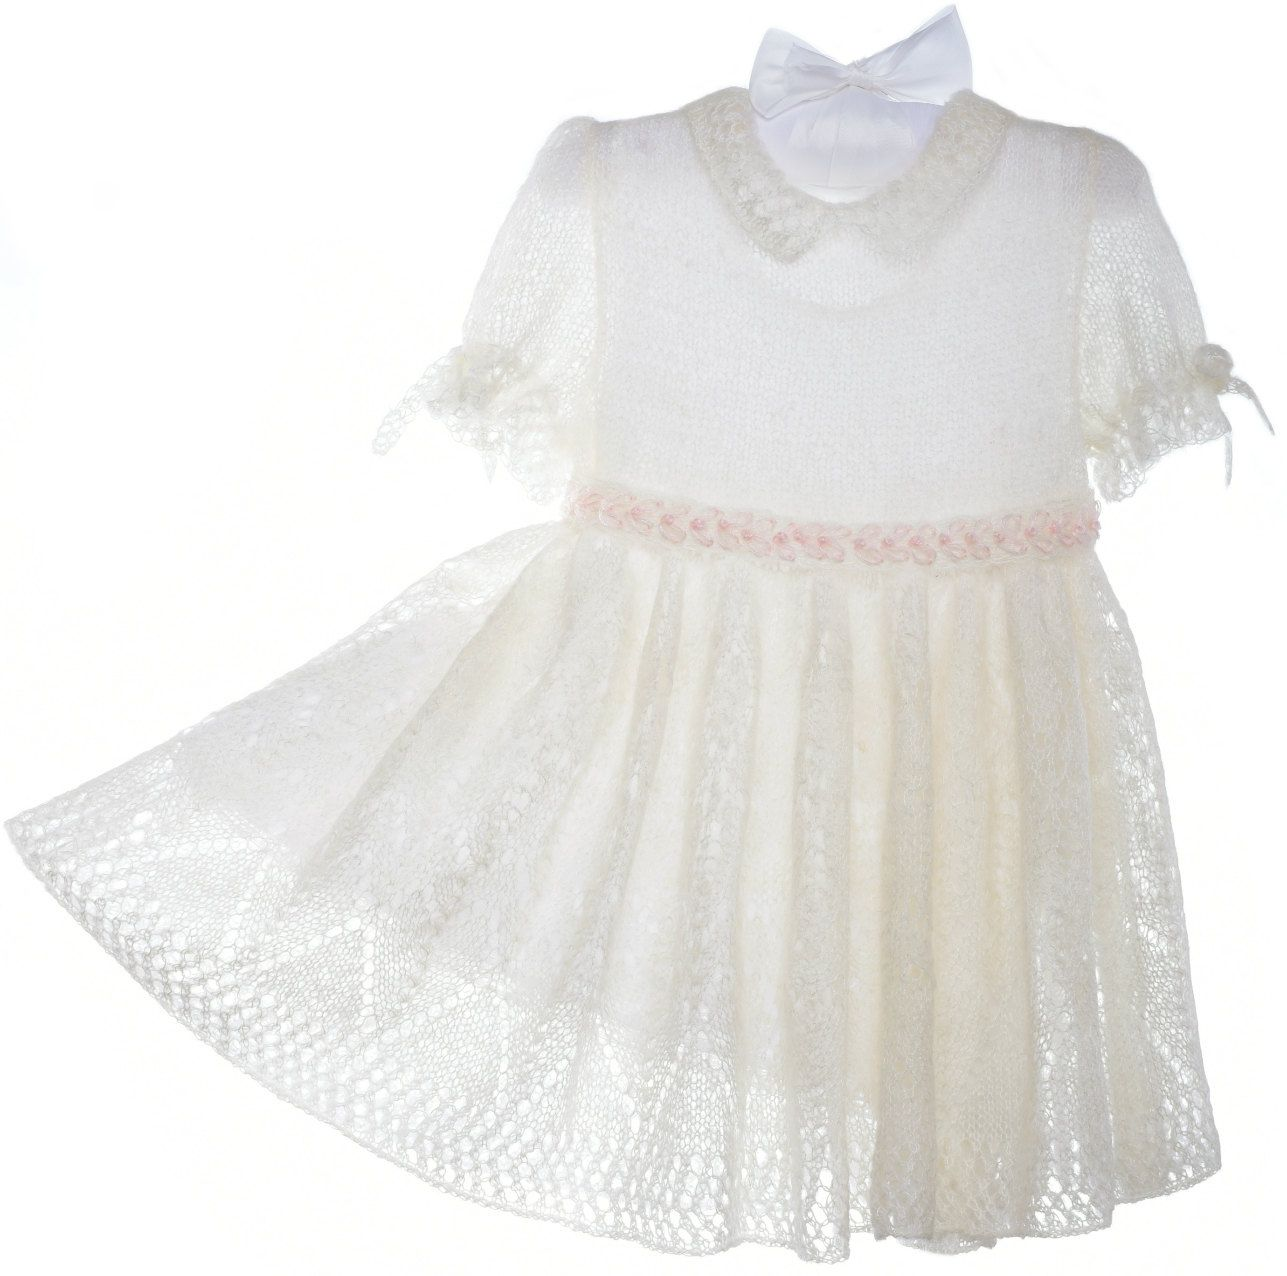 Knitted white lace mohair dress for little girl embroidered short